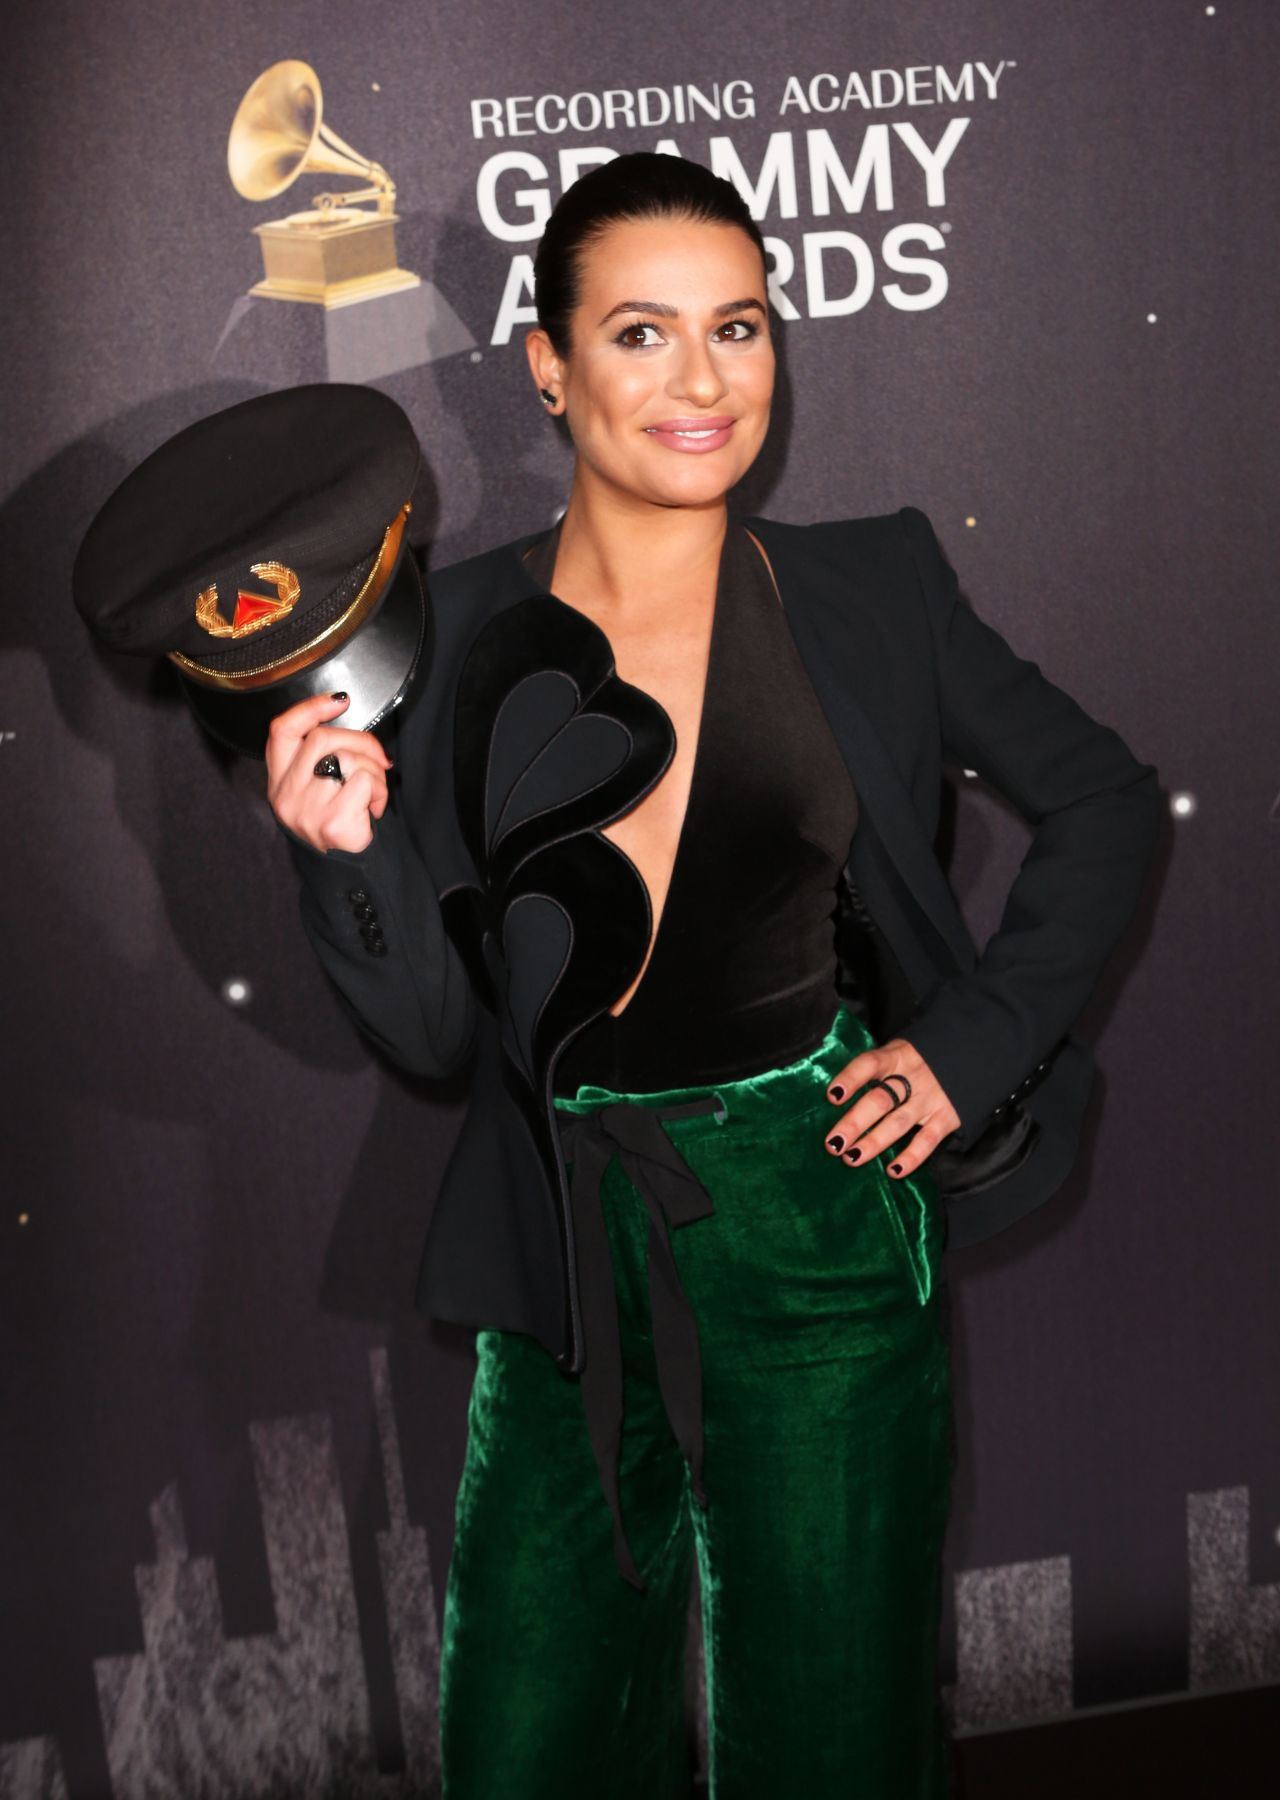 http://celebmafia.com/wp-content/uploads/2018/01/lea-michele-delta-airlines-celebrates-2018-grammy-weekend-event-in-nyc-3.jpg